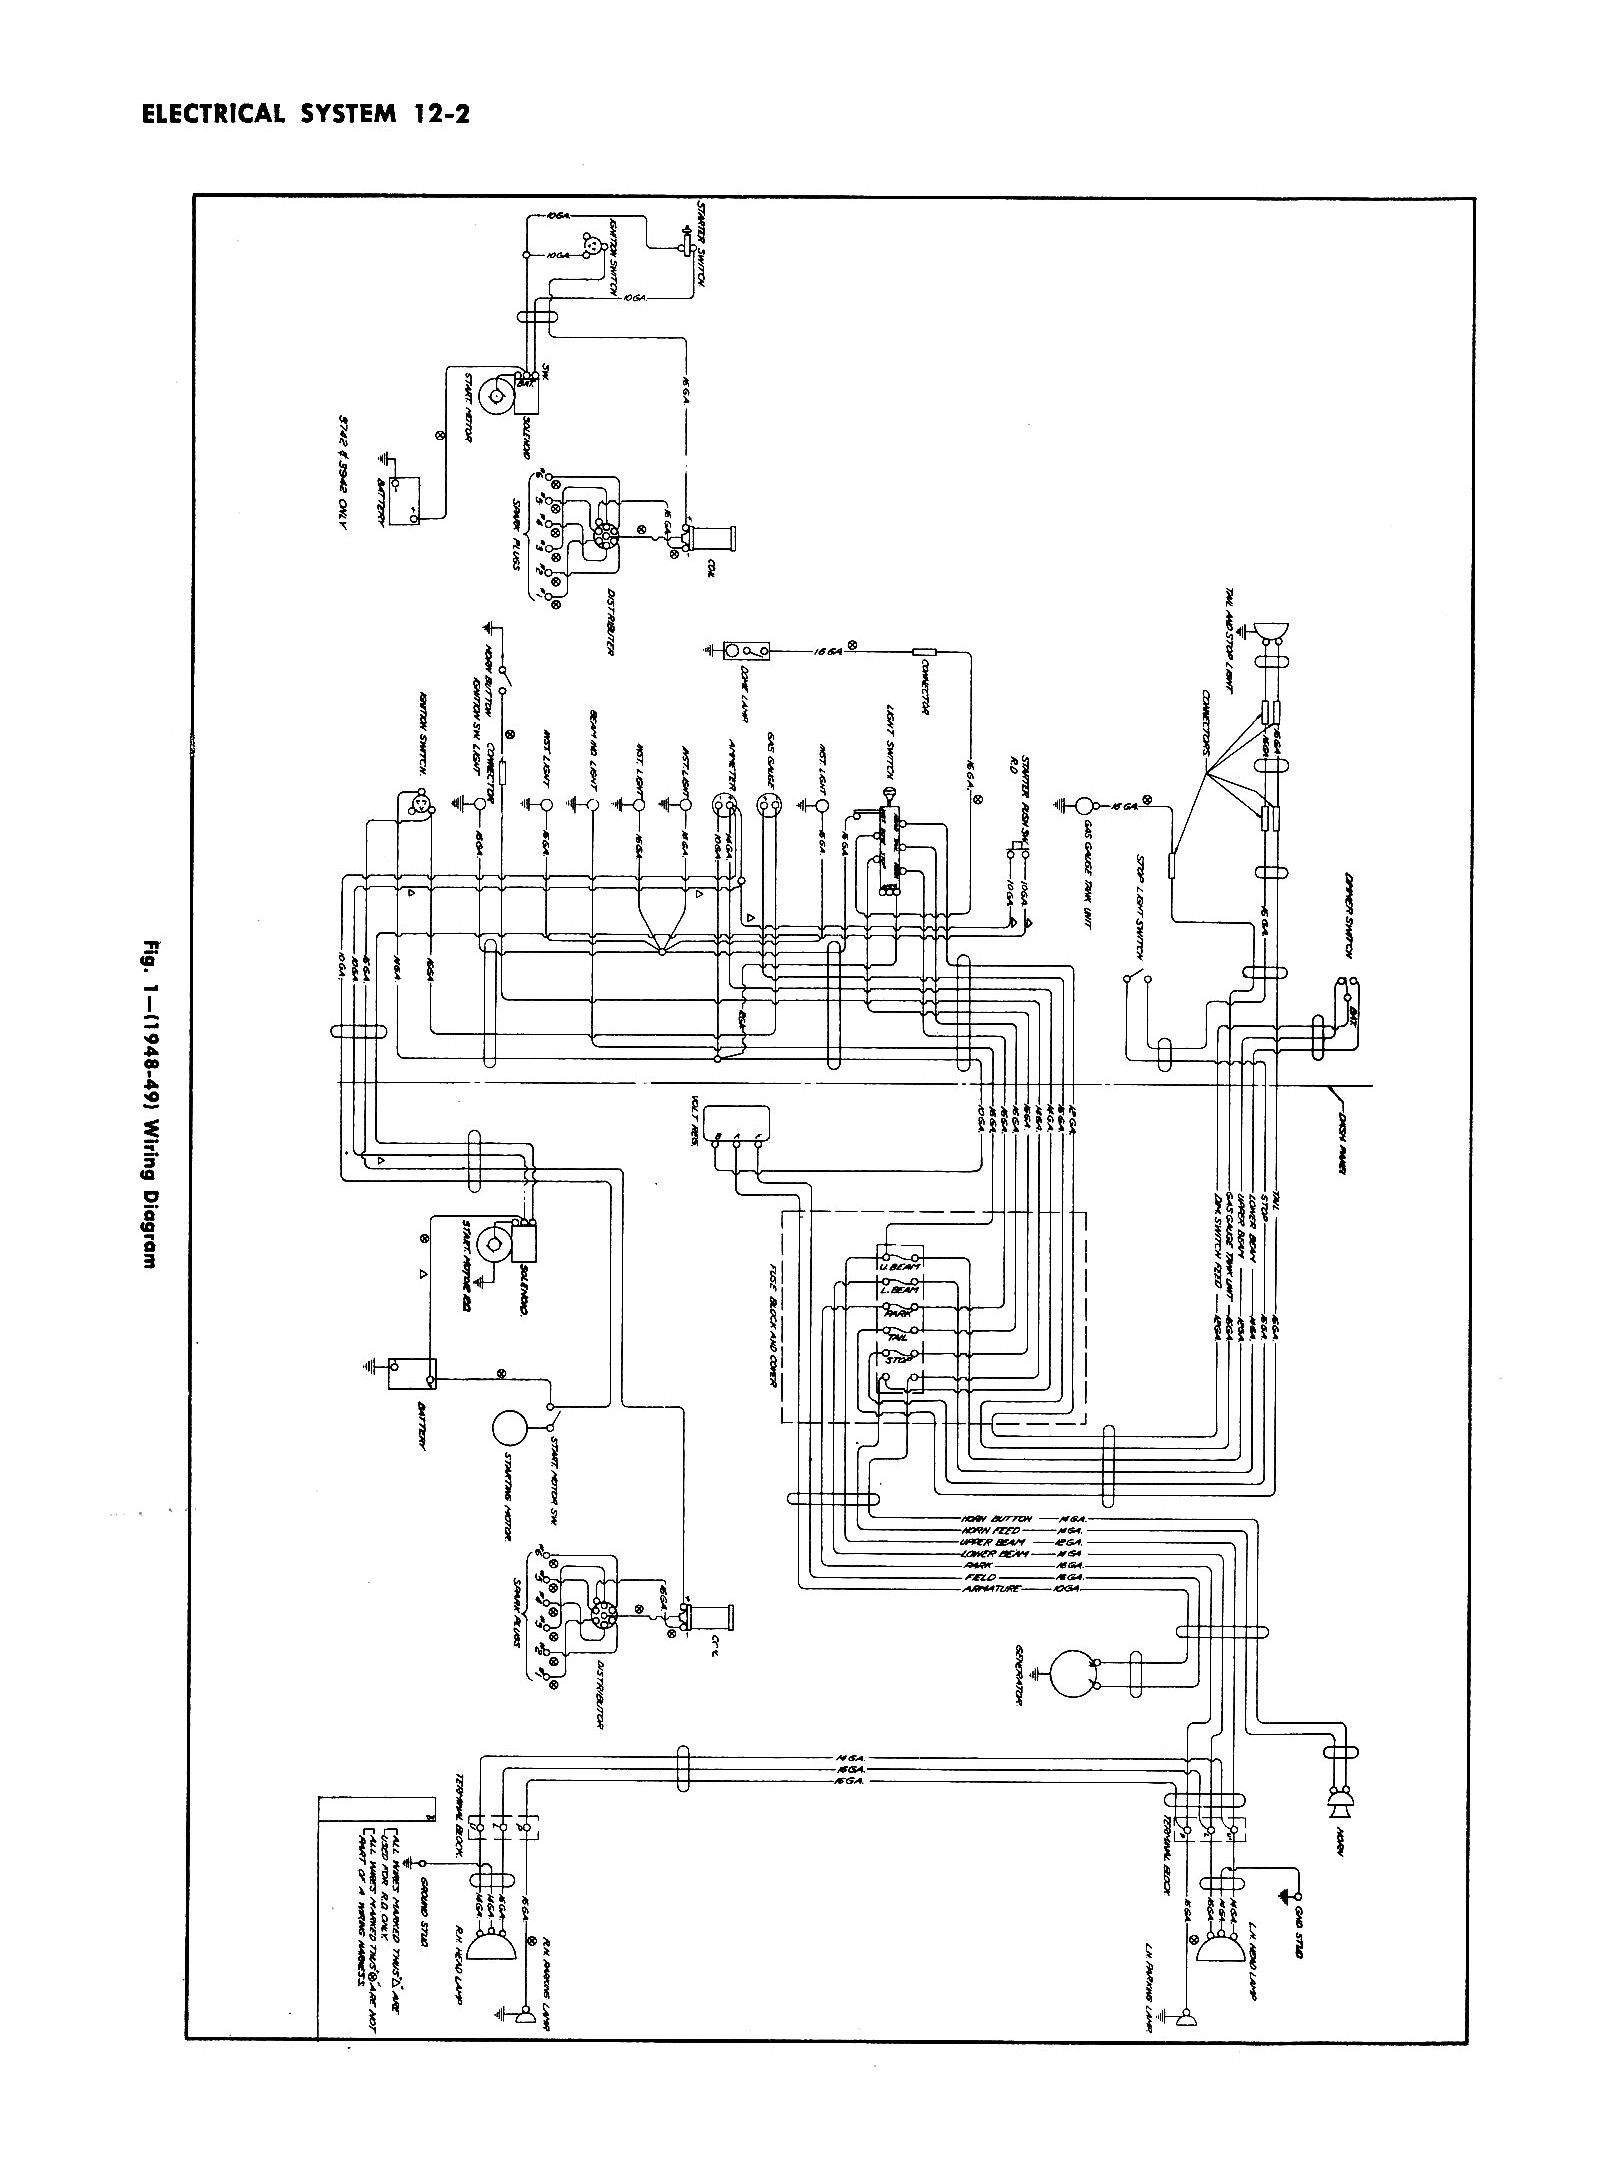 2001 Gmc Truck Electrical Wiring Diagrams Just Data Fuse 1948 Chevy Diagram Schemes Radio